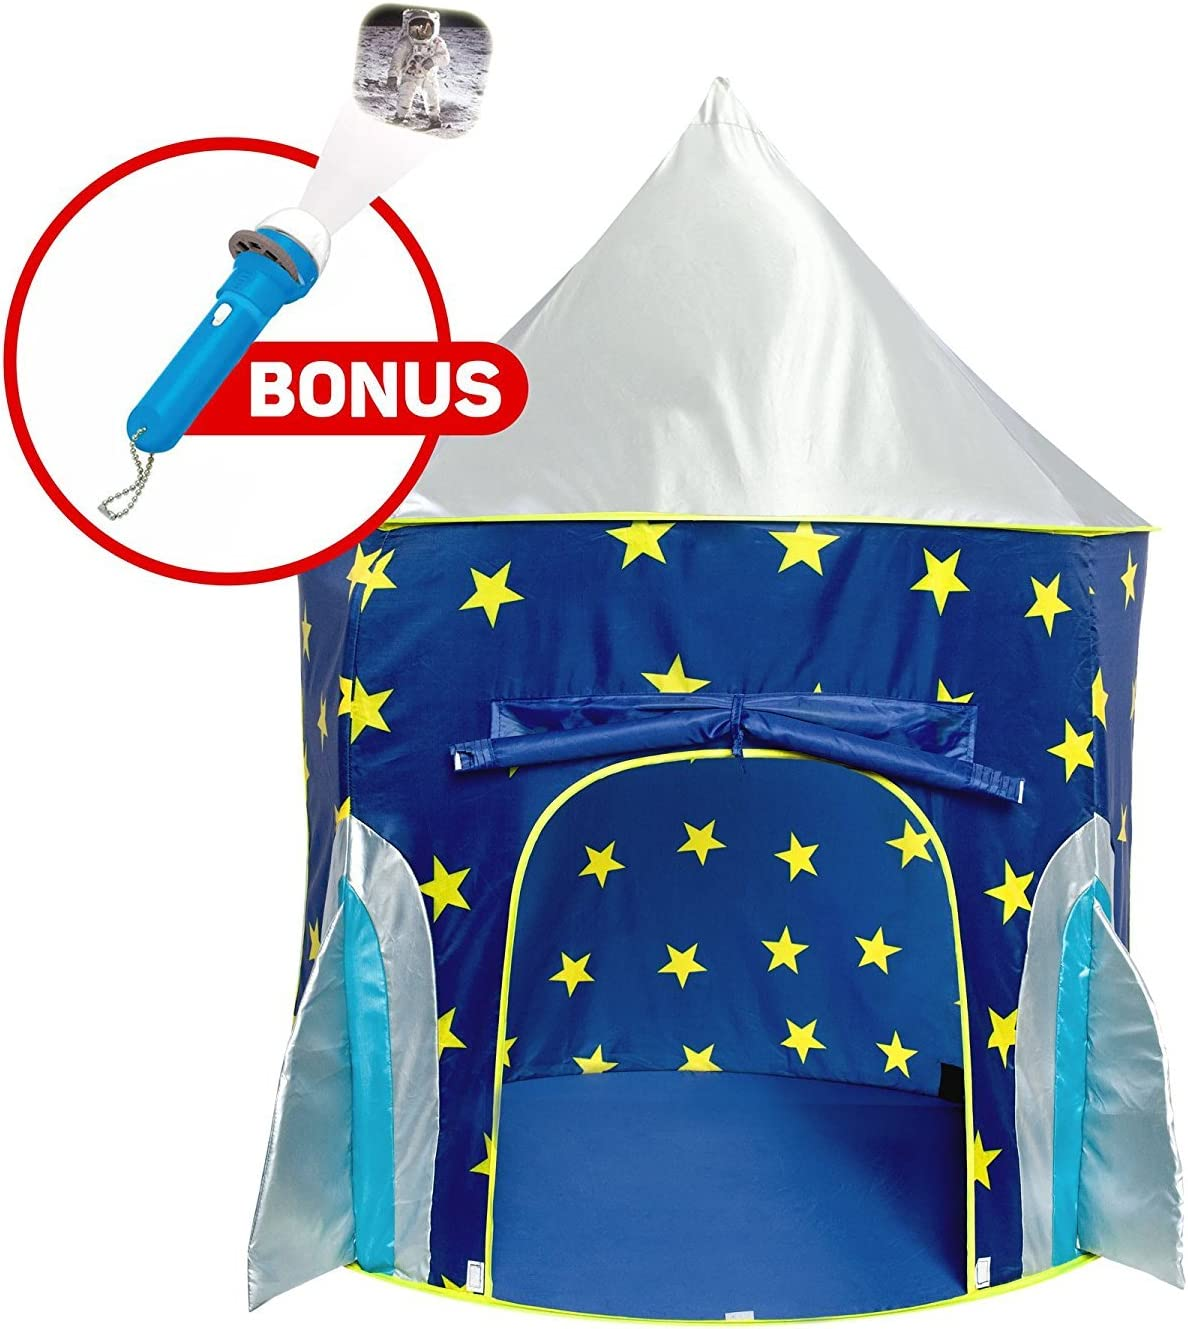 Rocket Ship Play Tent - Spaceship Playhouse ...  sc 1 st  Amazon.com & Amazon.com: Play Tents u0026 Tunnels: Toys u0026 Games: Play Tents Play ...